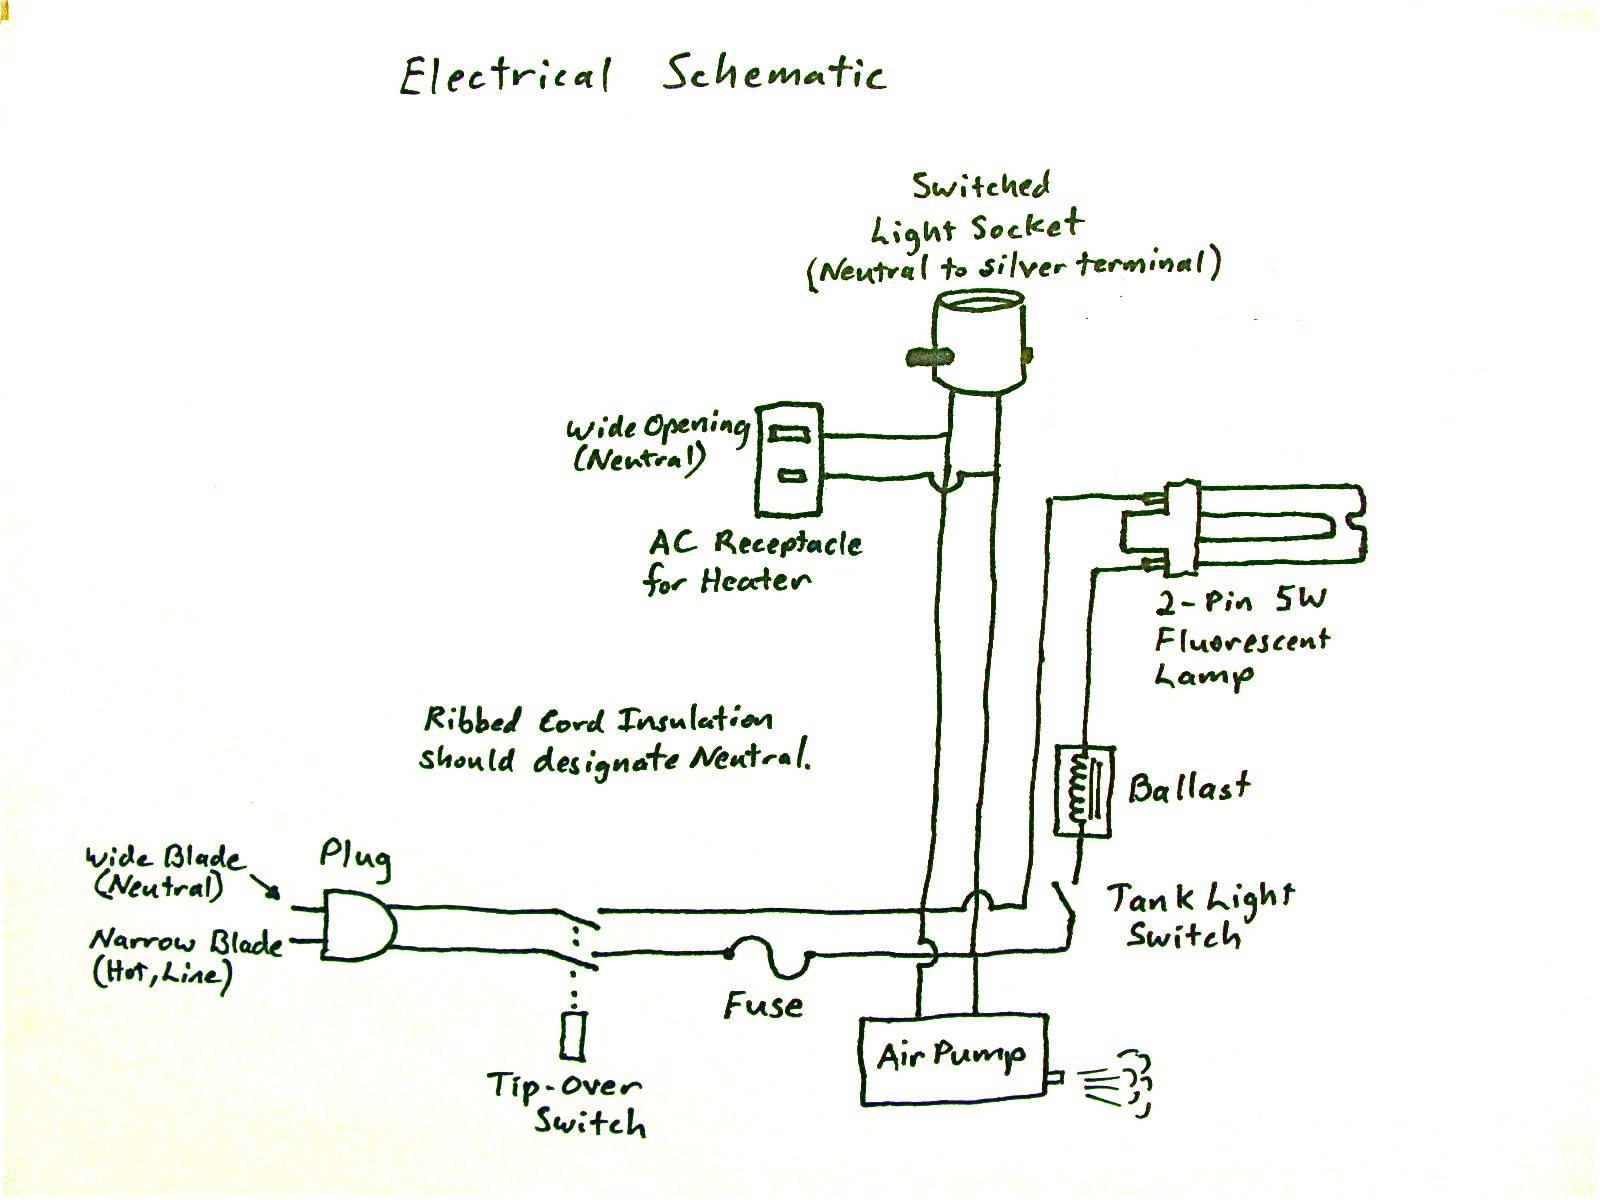 Picture of Electrical: Base, Heater Outlet, Lamp Socket, Fluorescent Lamp